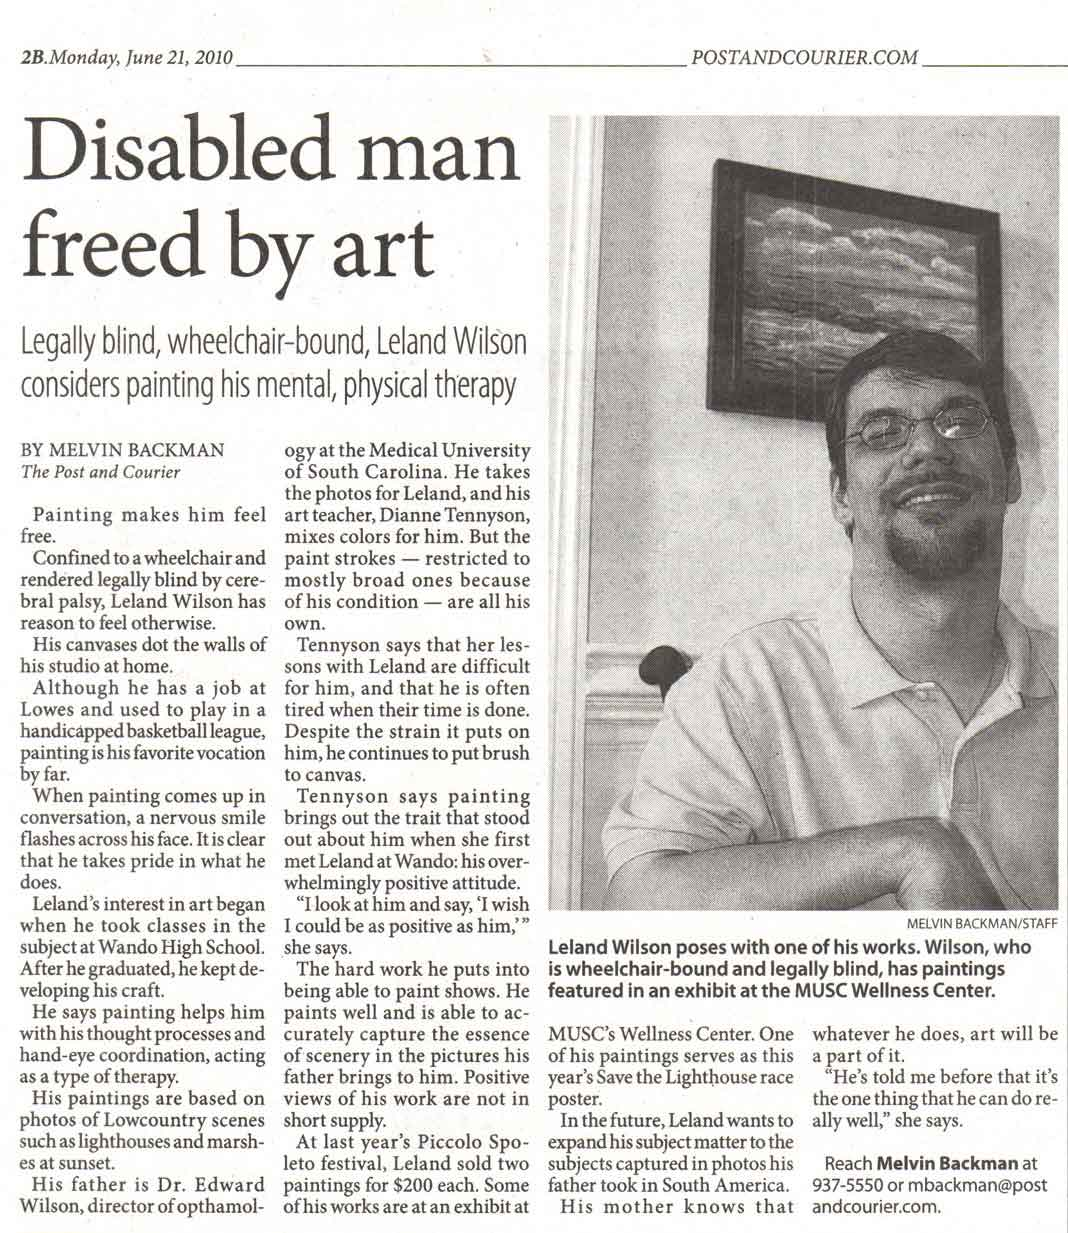 Disabled man freed by art